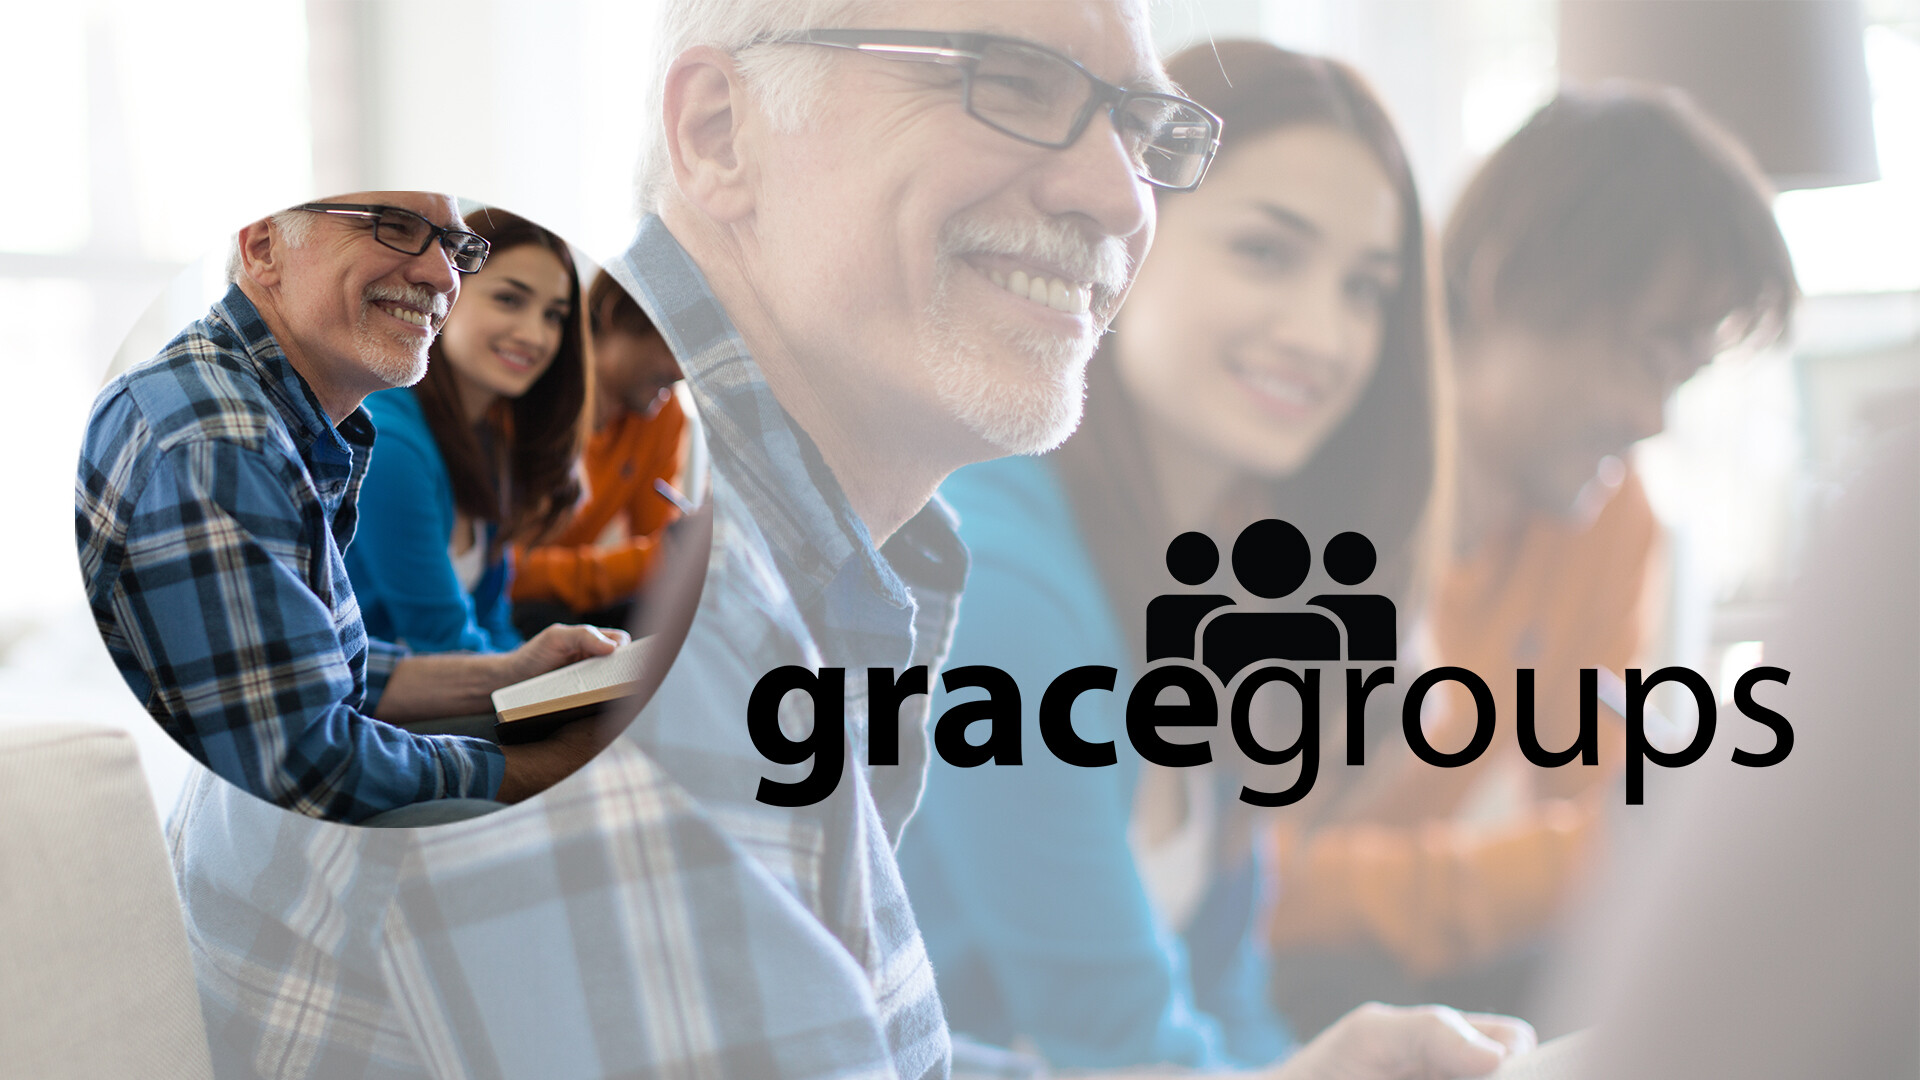 Gracegroups